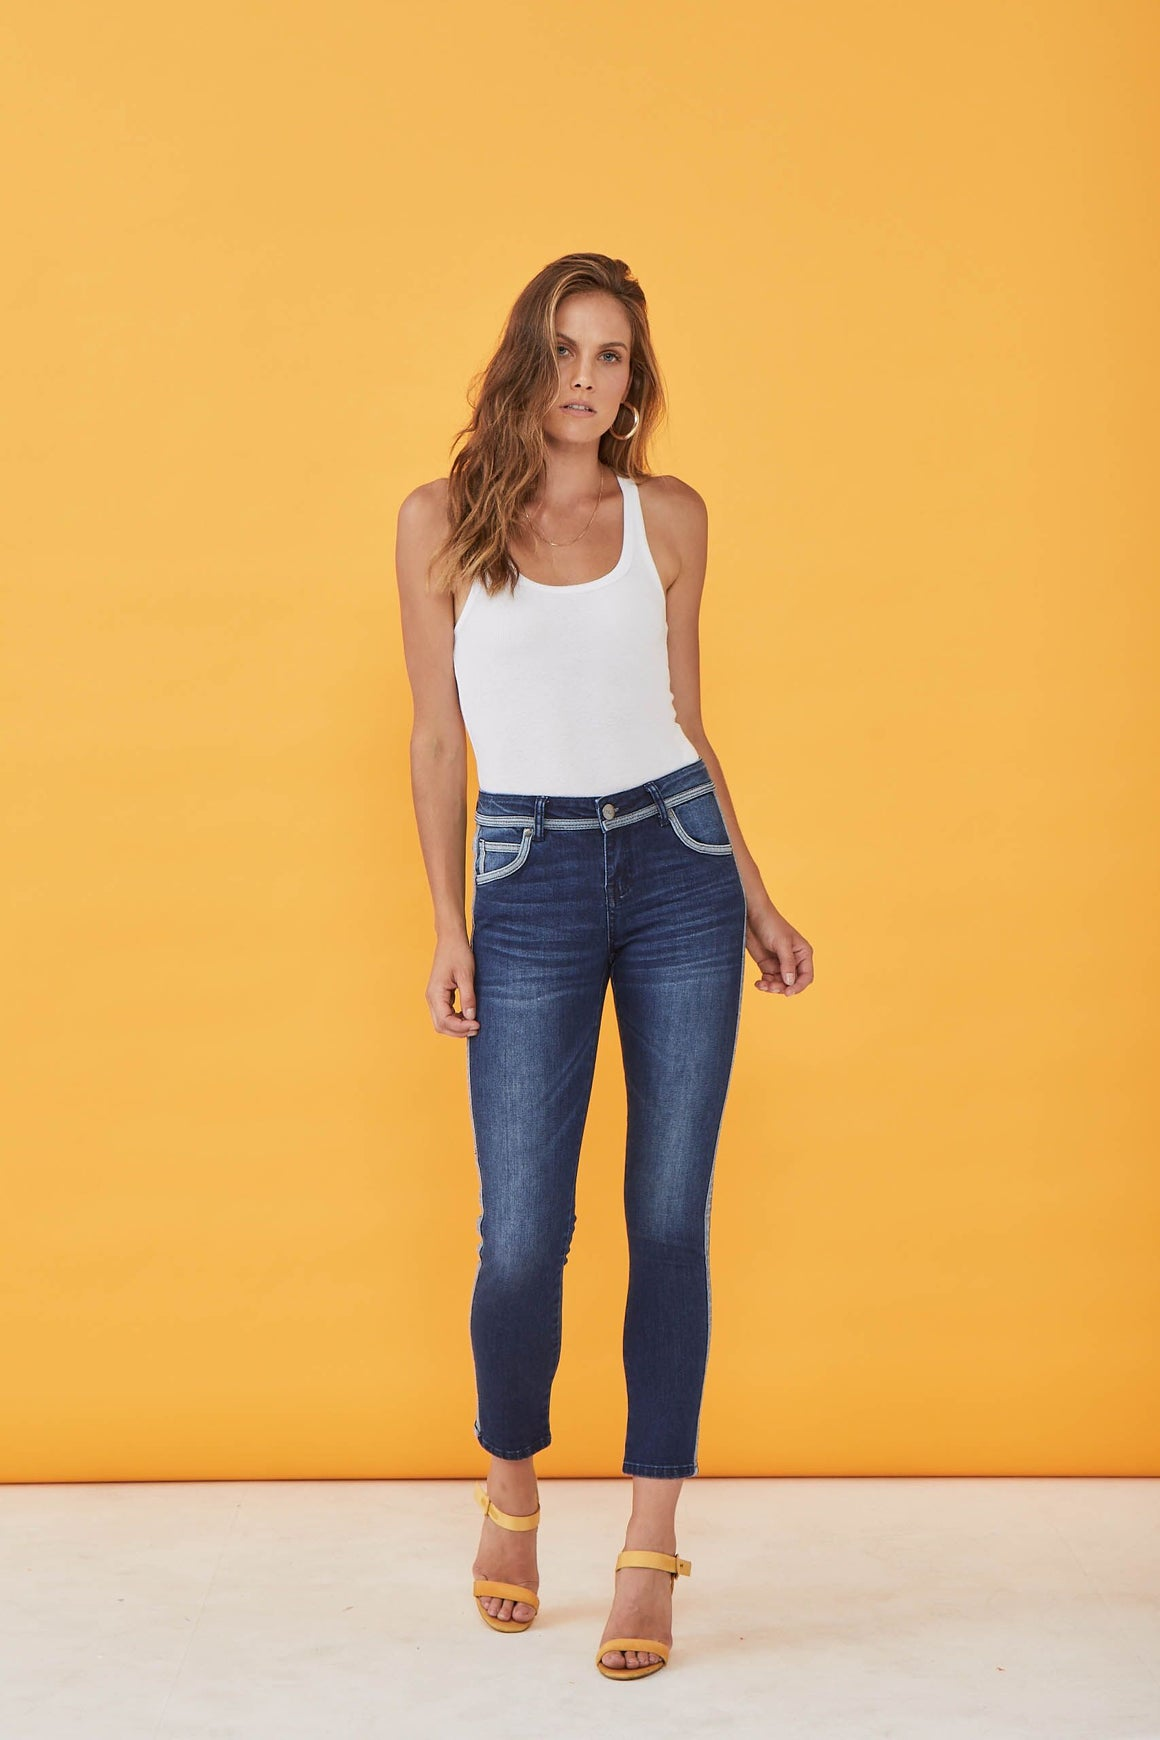 Shelton T Denim Jeans by New London